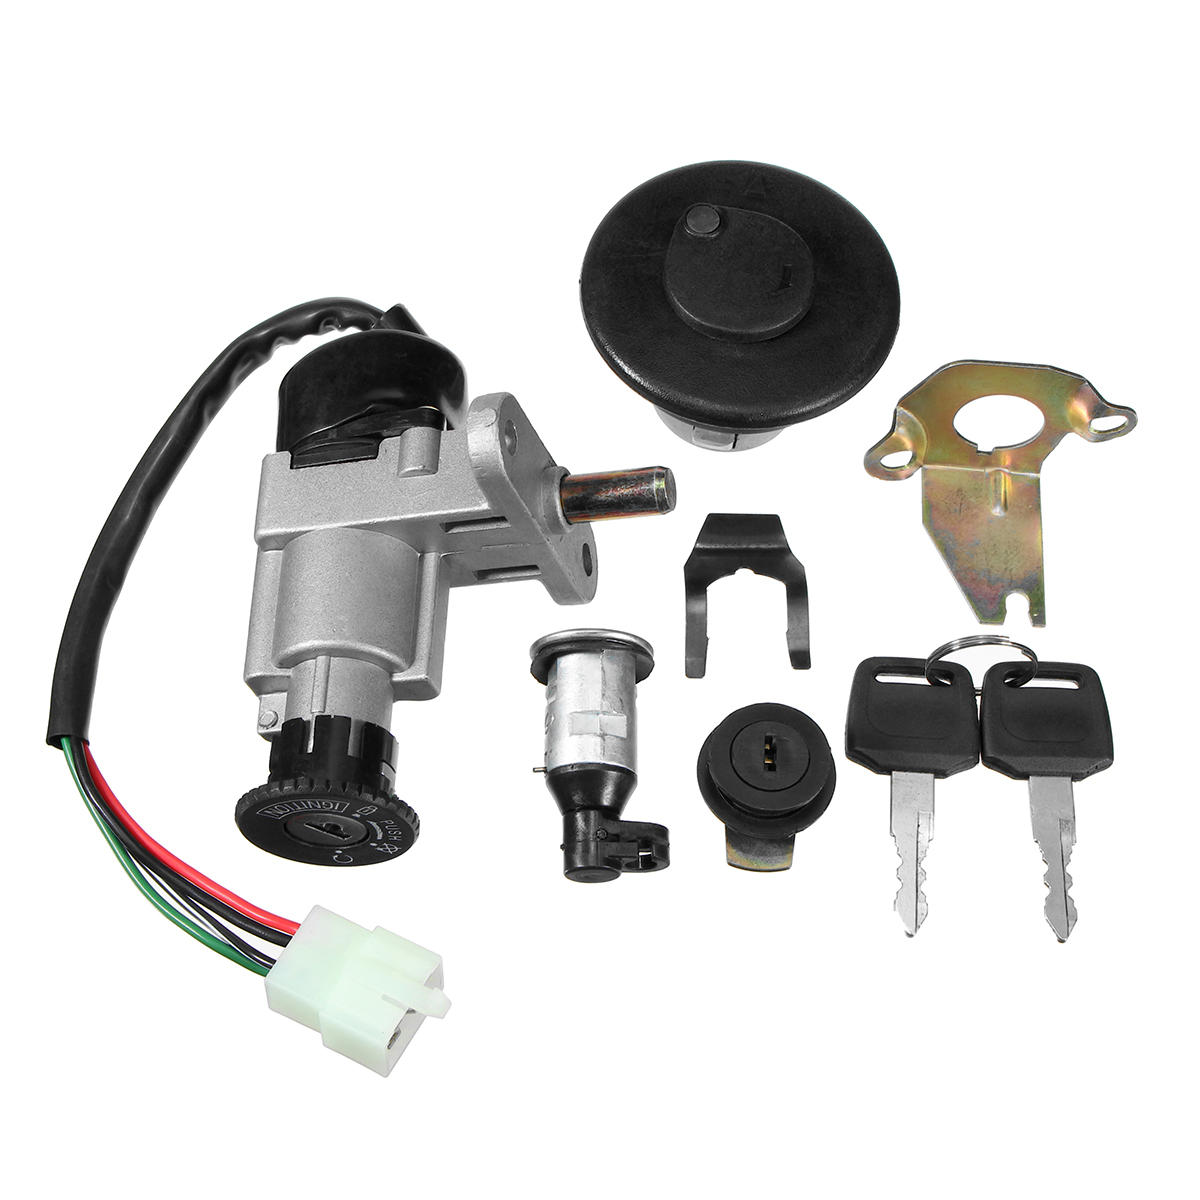 hight resolution of universal ignition switch key set 139qmb 50cc gy6 150cc chinese scooter ignition switch key set on tank 50cc scooter motor diagram